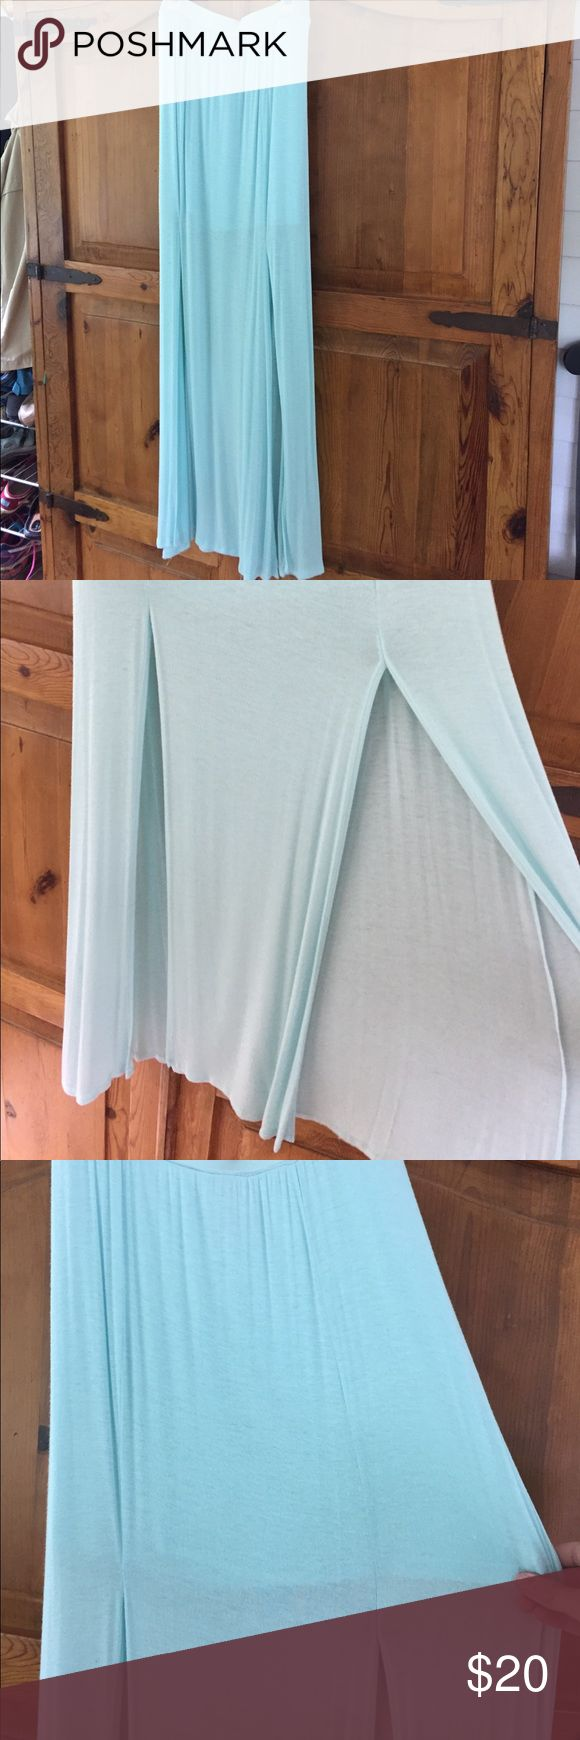 Maxi skirt Super soft, double slit mint maxi skirt Hollister Skirts Maxi